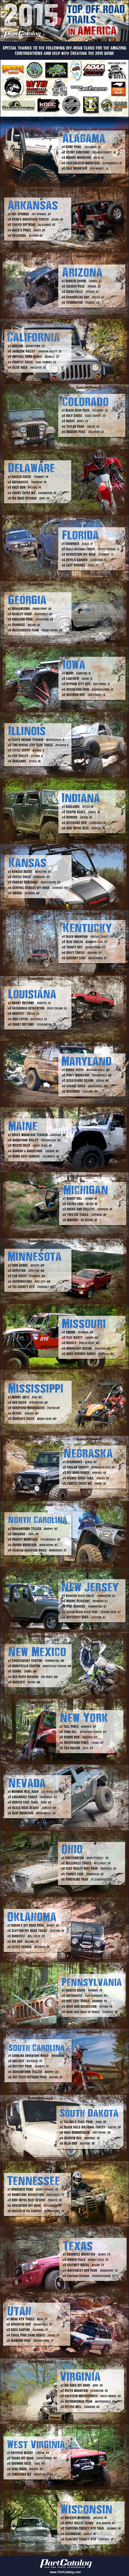 2015 Top Off Road Trails in America